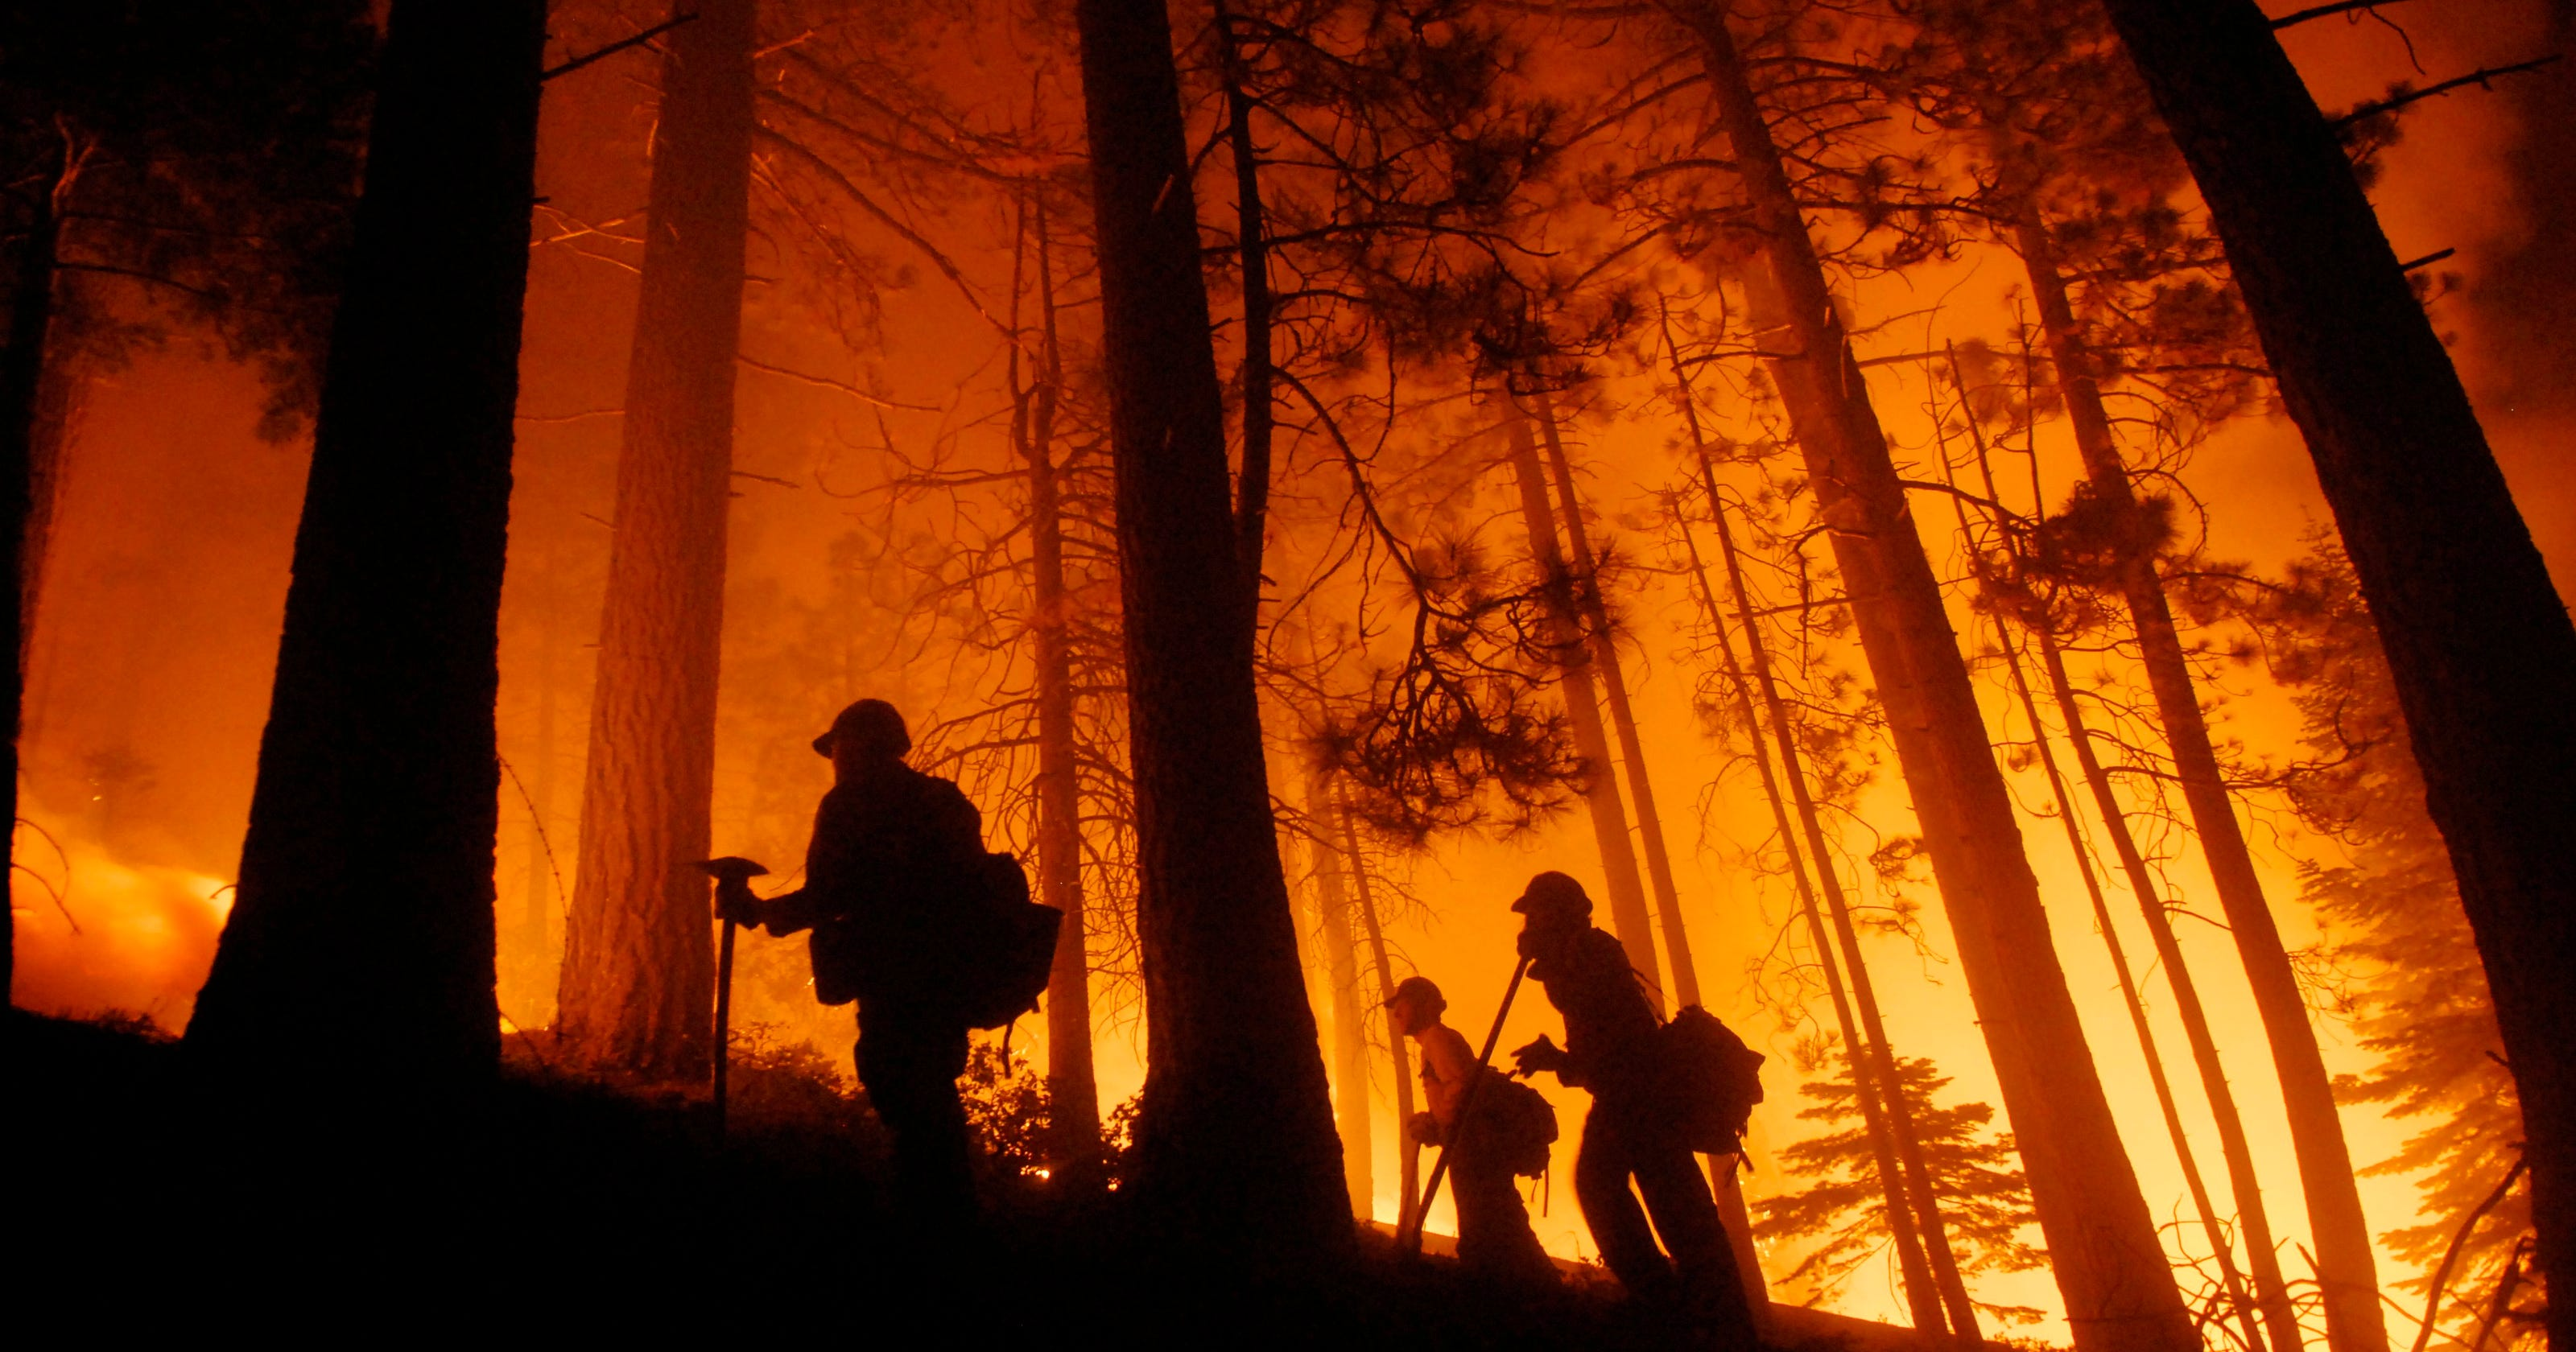 Lake Tahoe Weather Conditions Mirror Those That Fanned Angora Fire In 2007